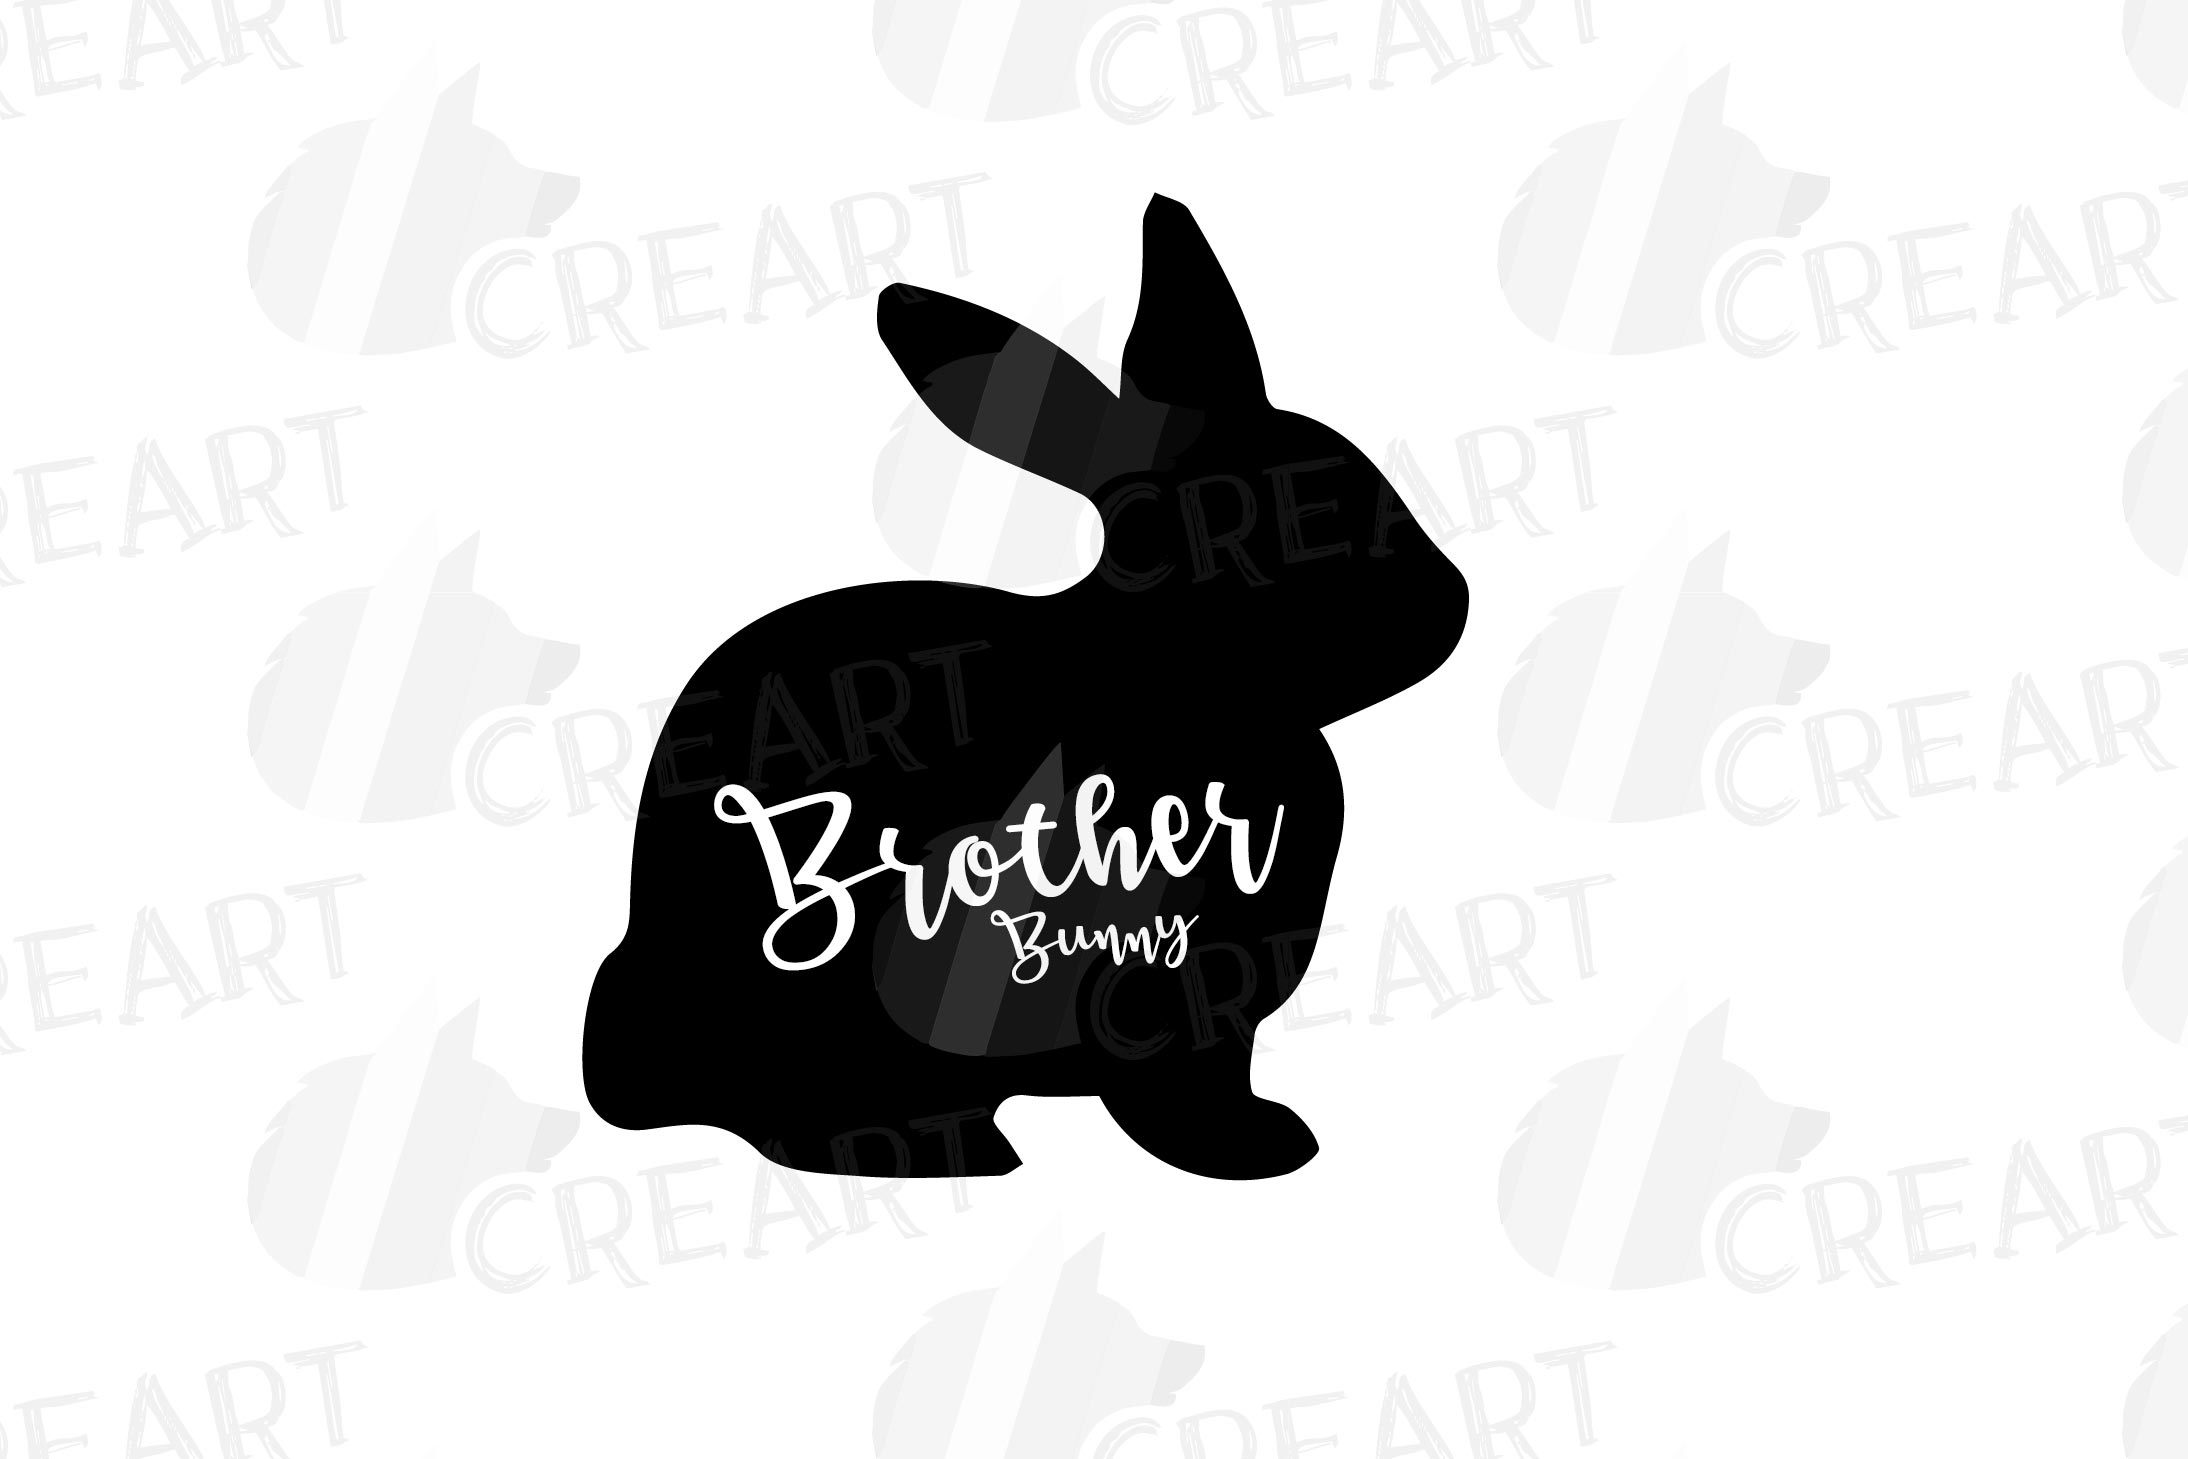 Rabbit family silhouettes, bunny silhouette svg cutting file example image 12